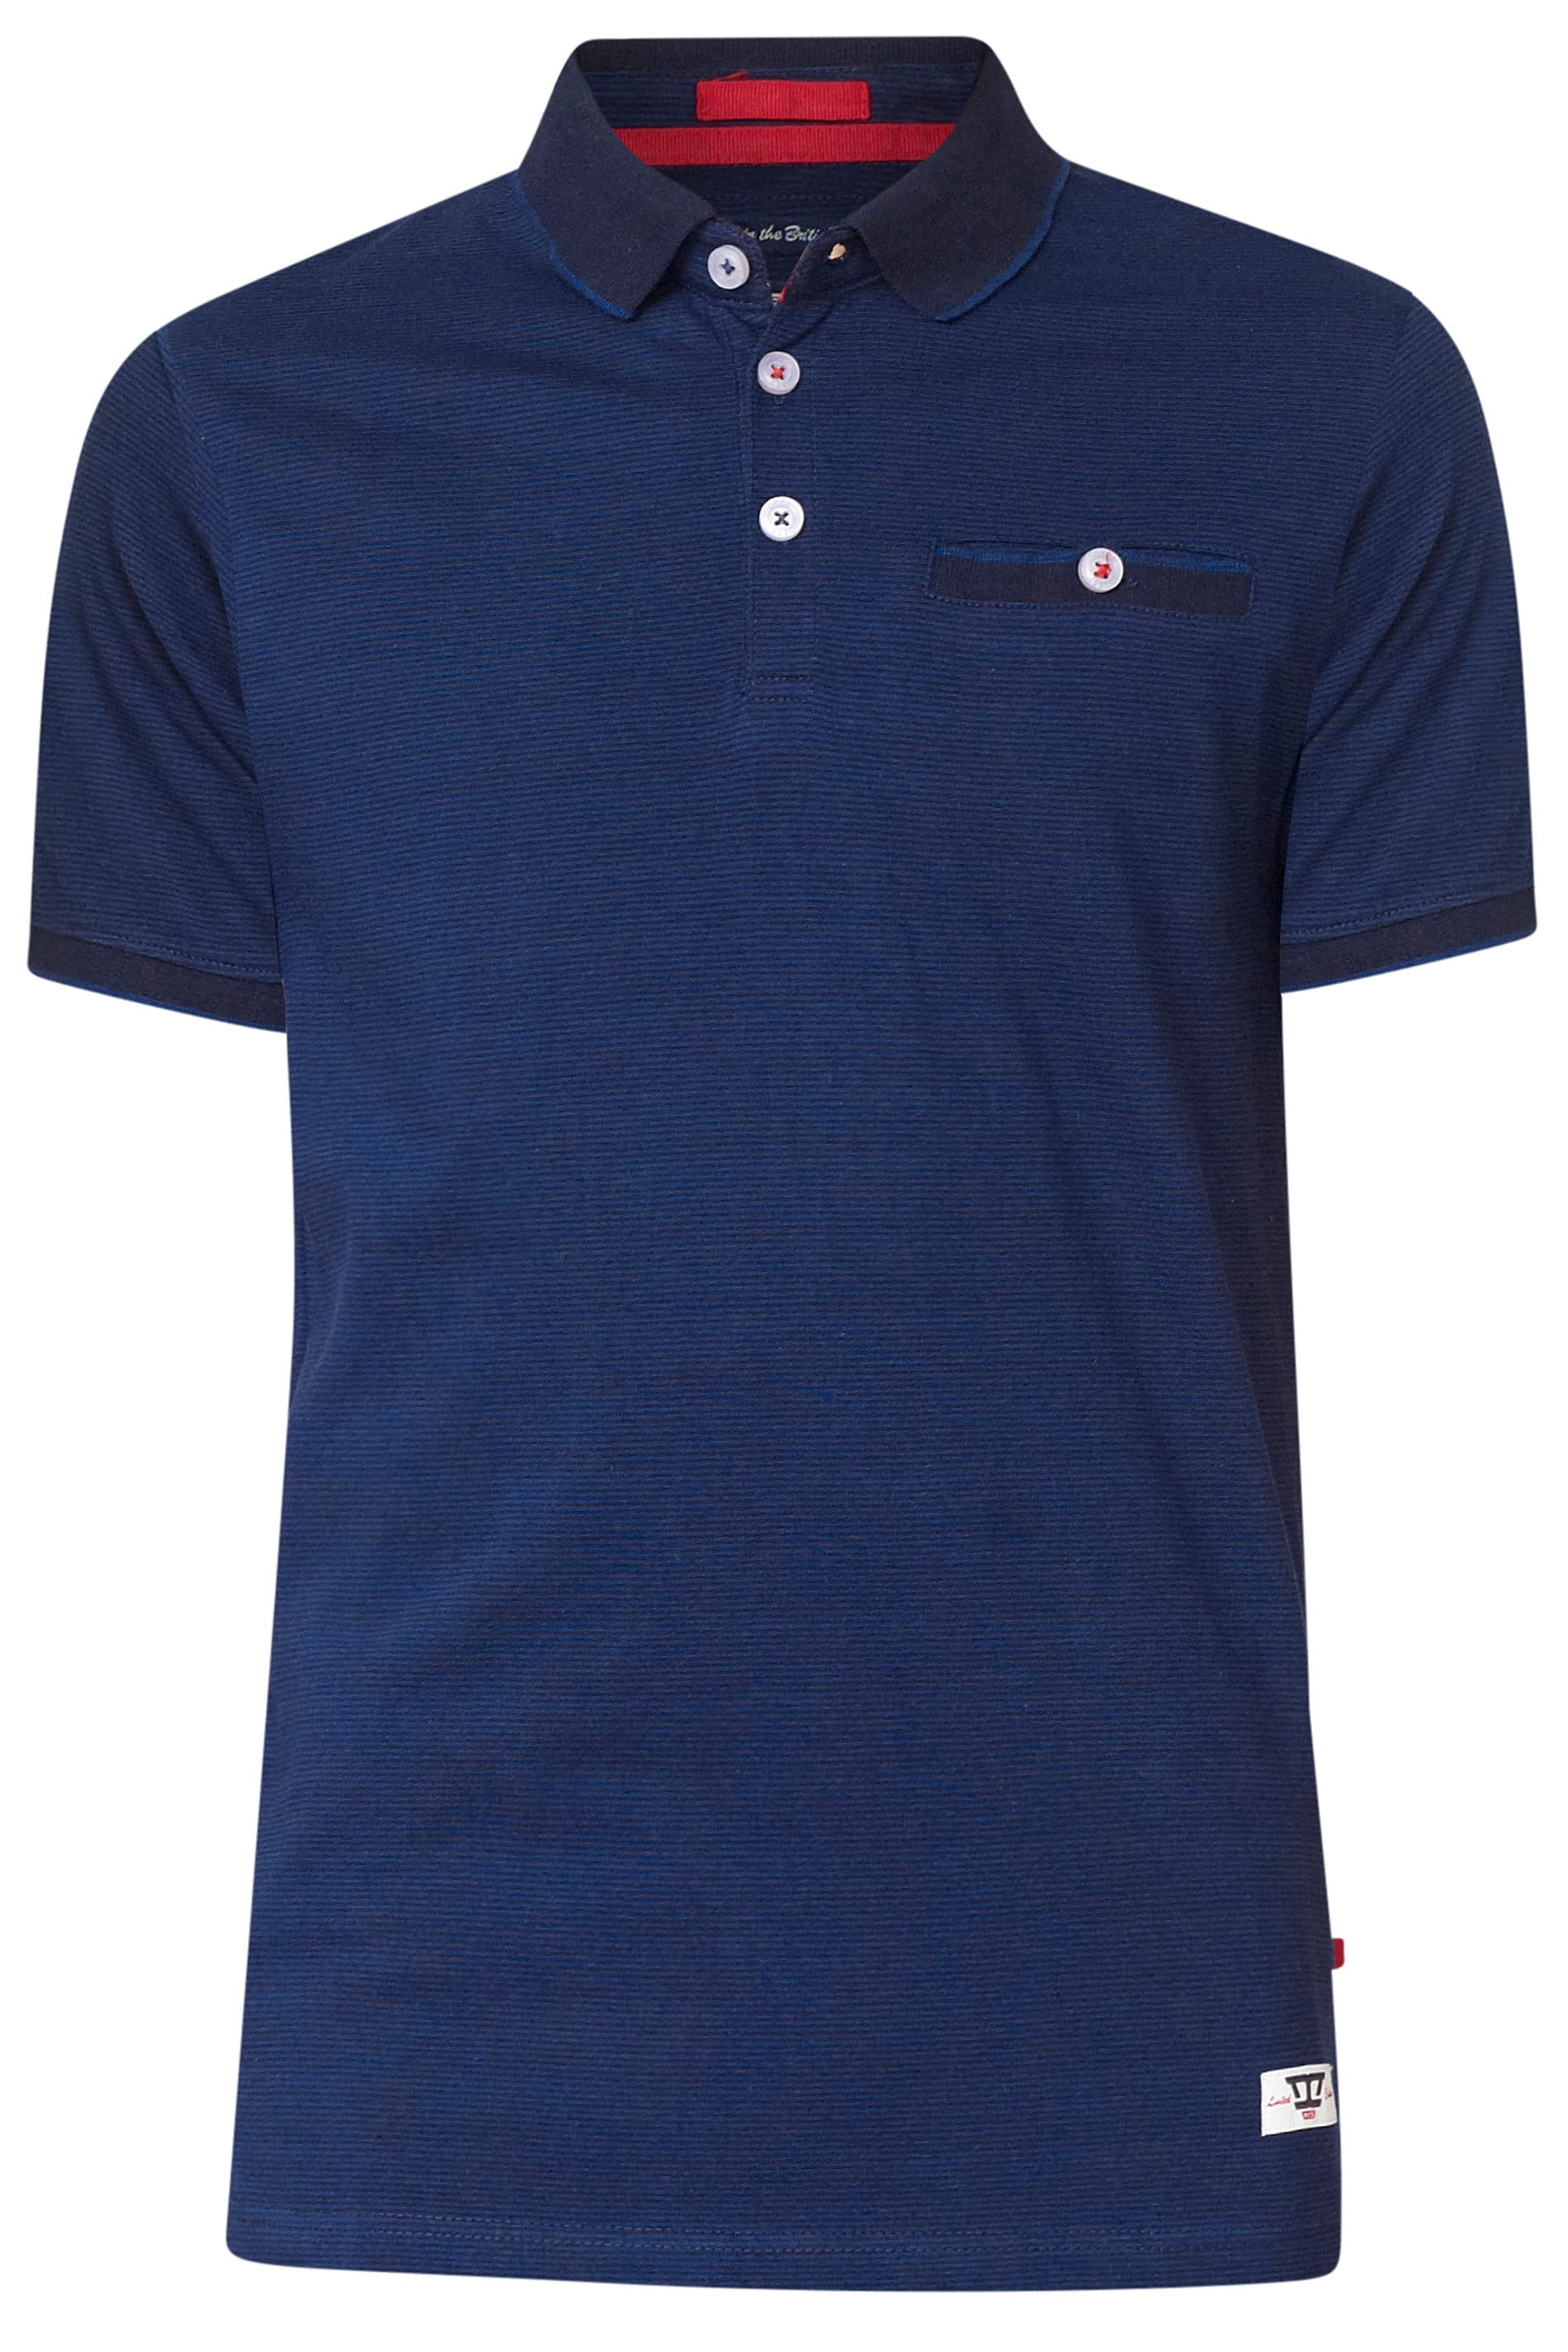 D555 Navy Fine Stripe Polo Shirt